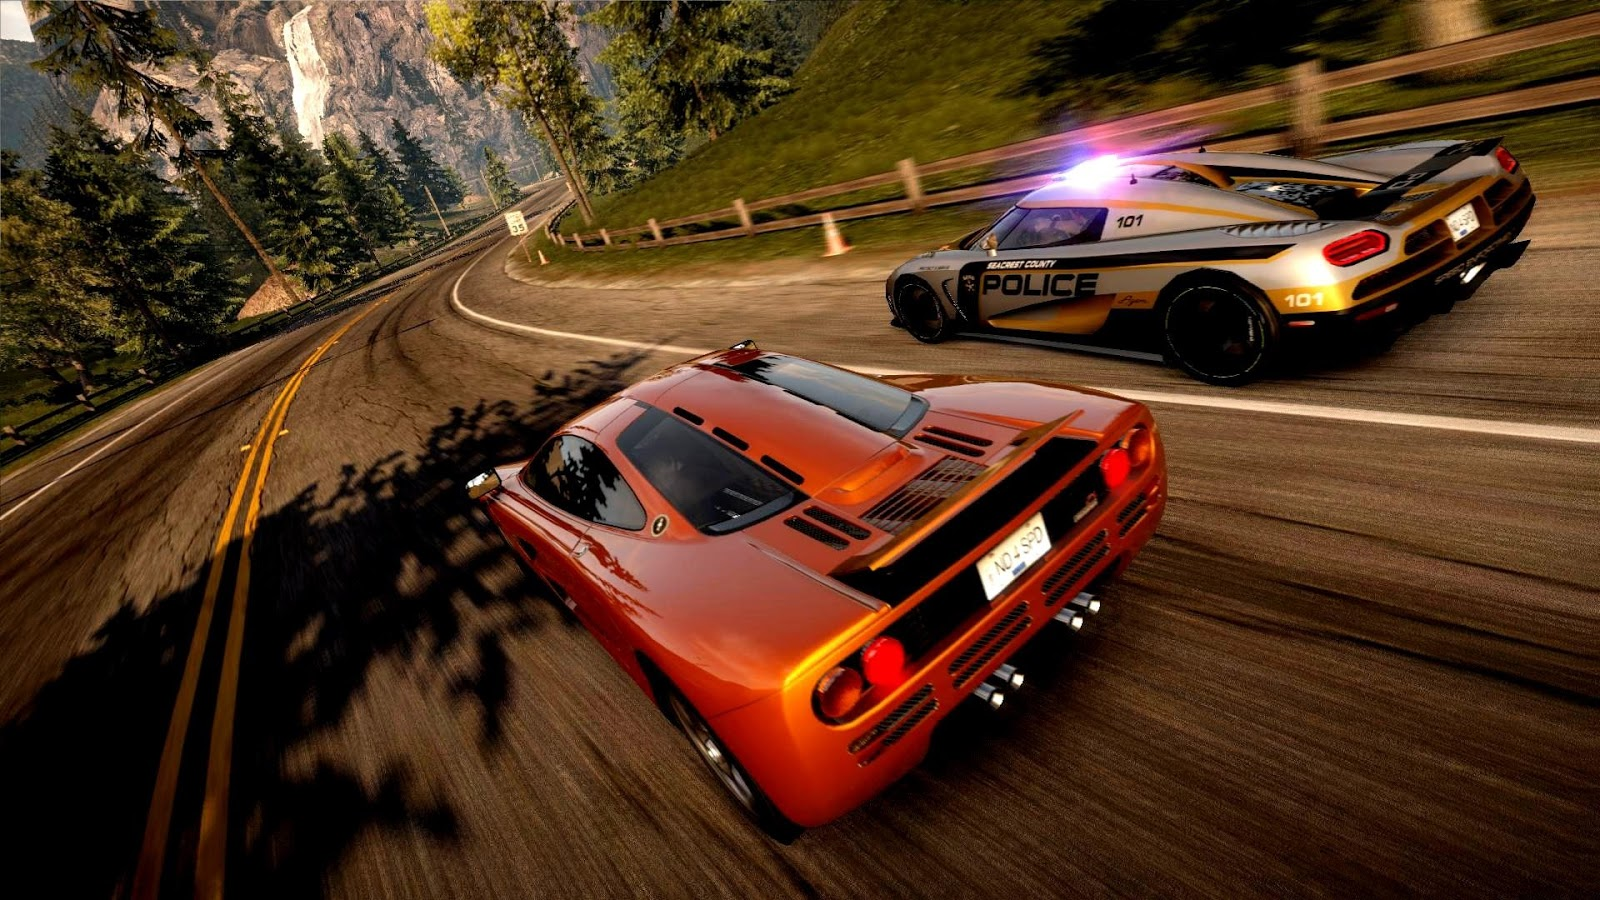 mclaren f1 nfs hot pursuit with Need For Speed Hot Pursuit 2010 on 1 besides Need For Speed Hot Pursuit 2010 moreover Need for speed girl wallpaper 5091 in addition NeedForSpeed furthermore 30.